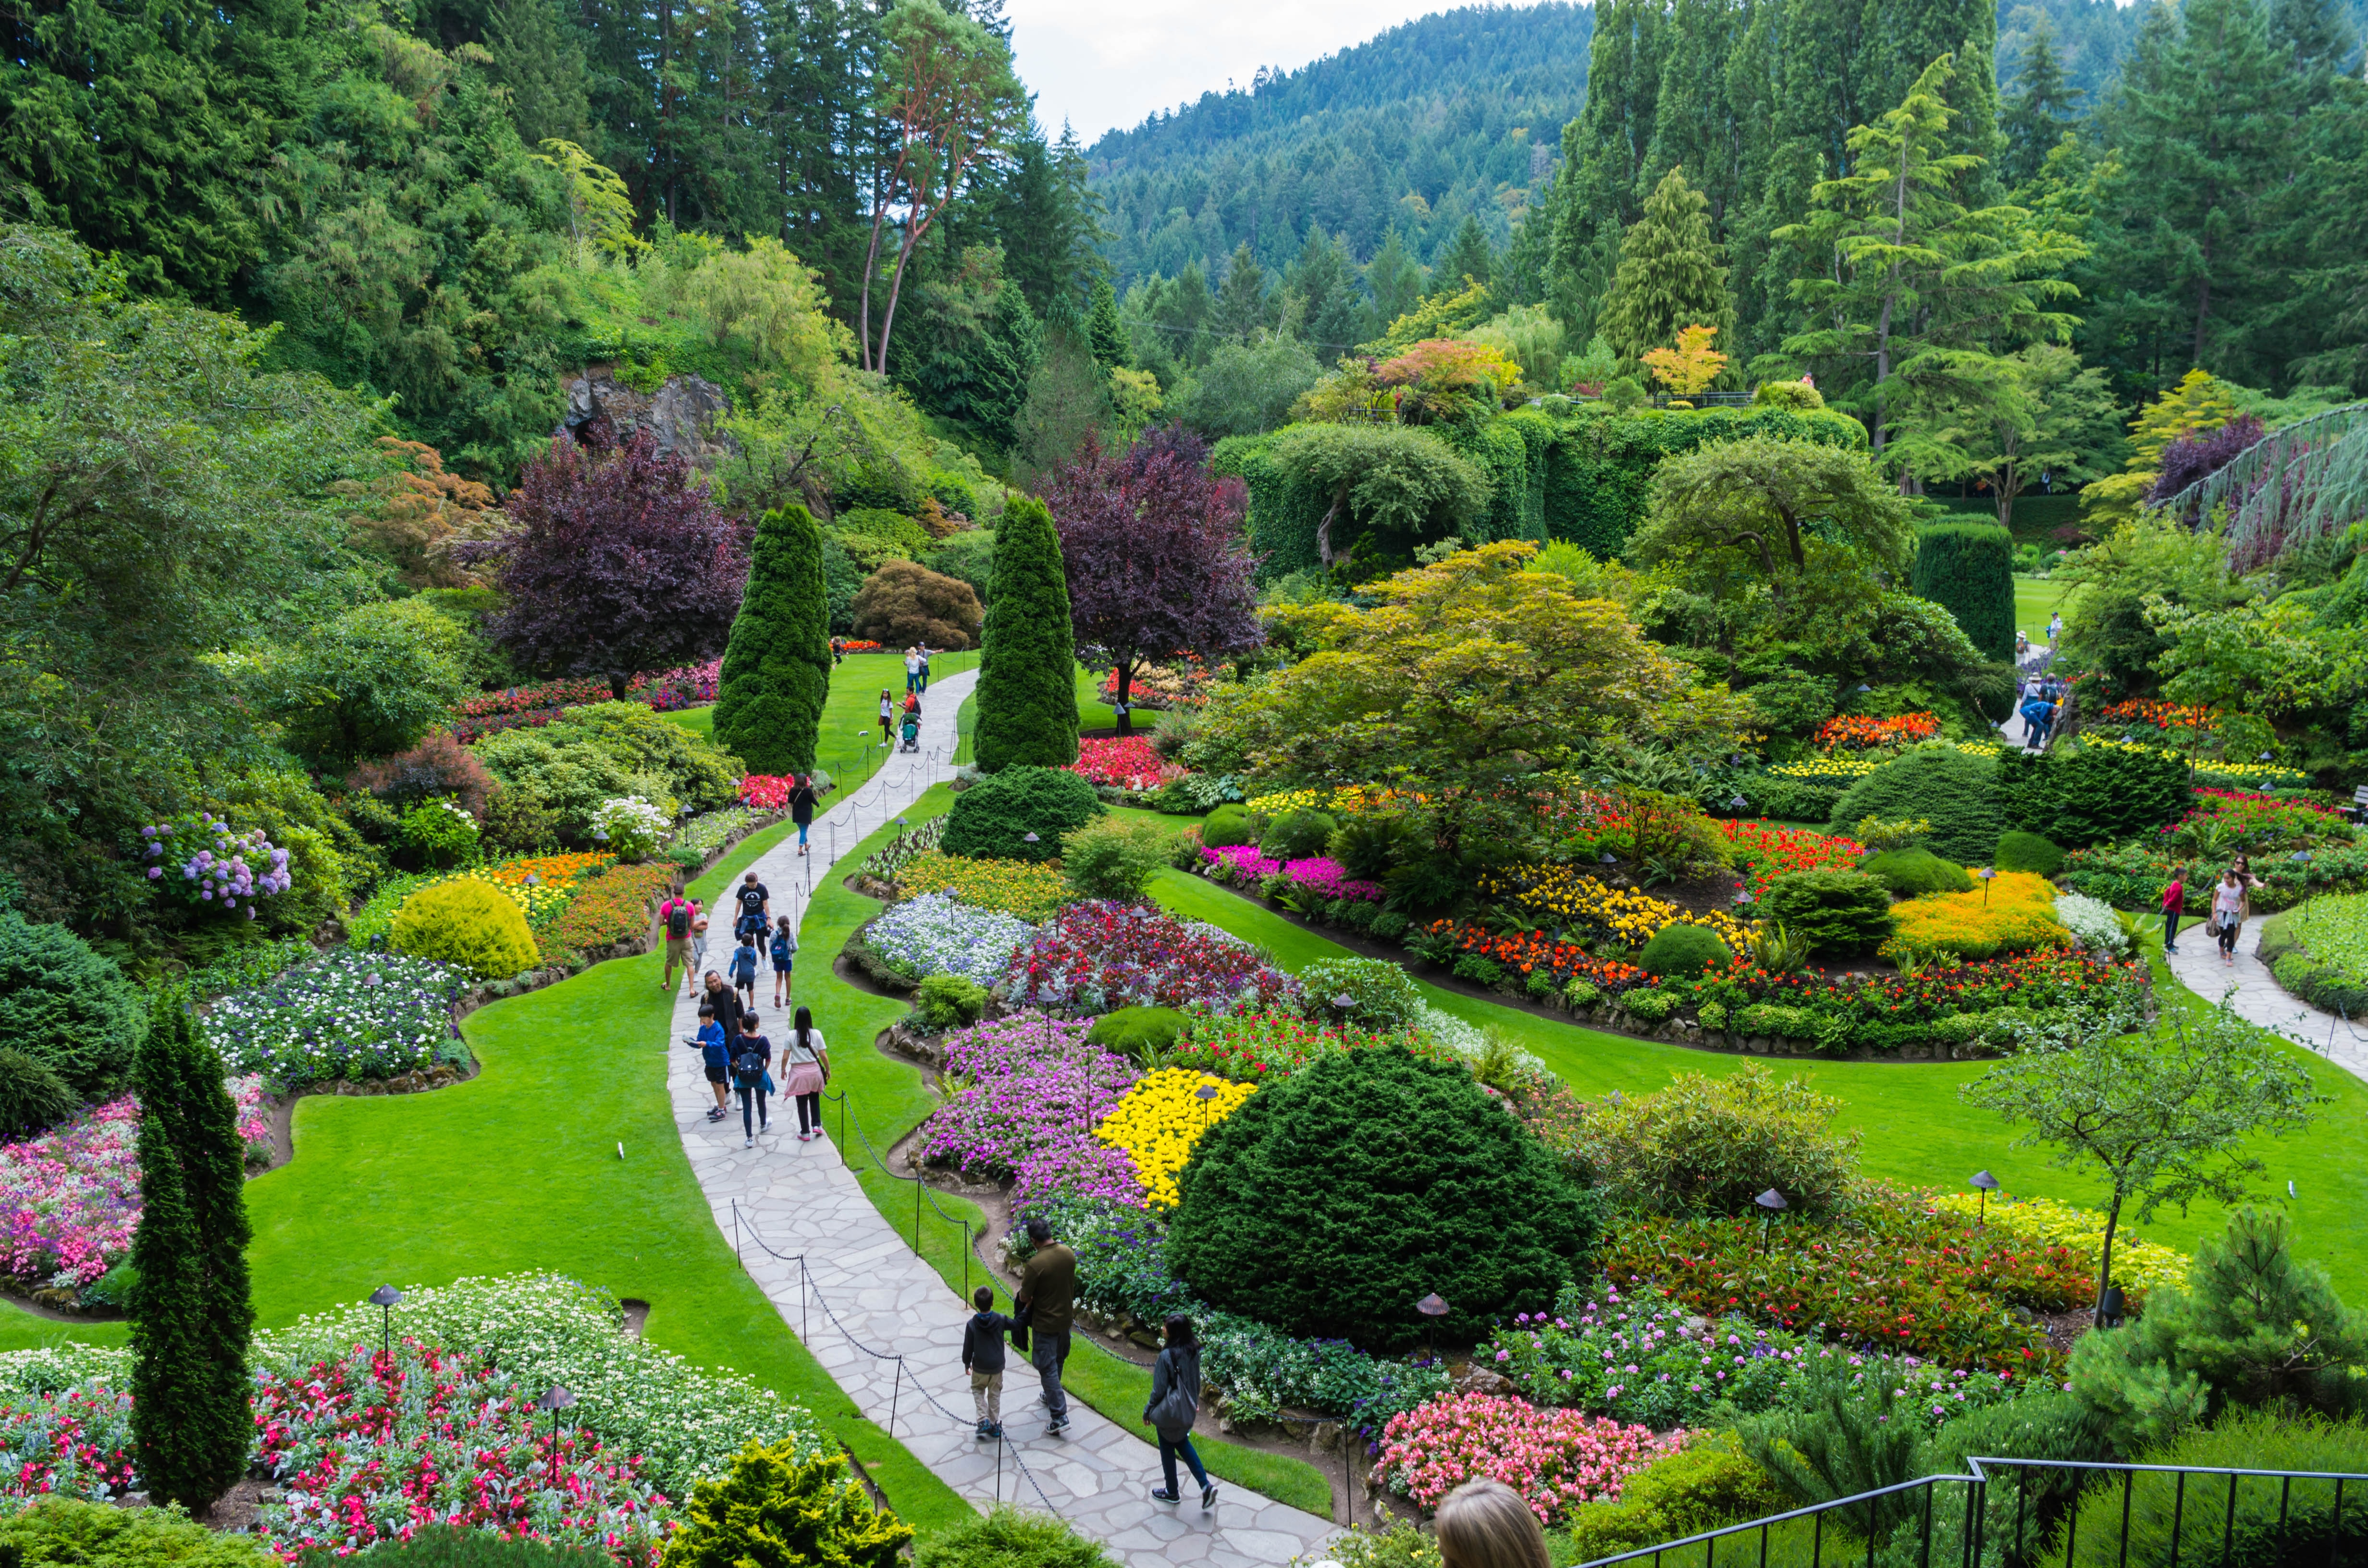 butchart gardens  in brentwood bay, canada